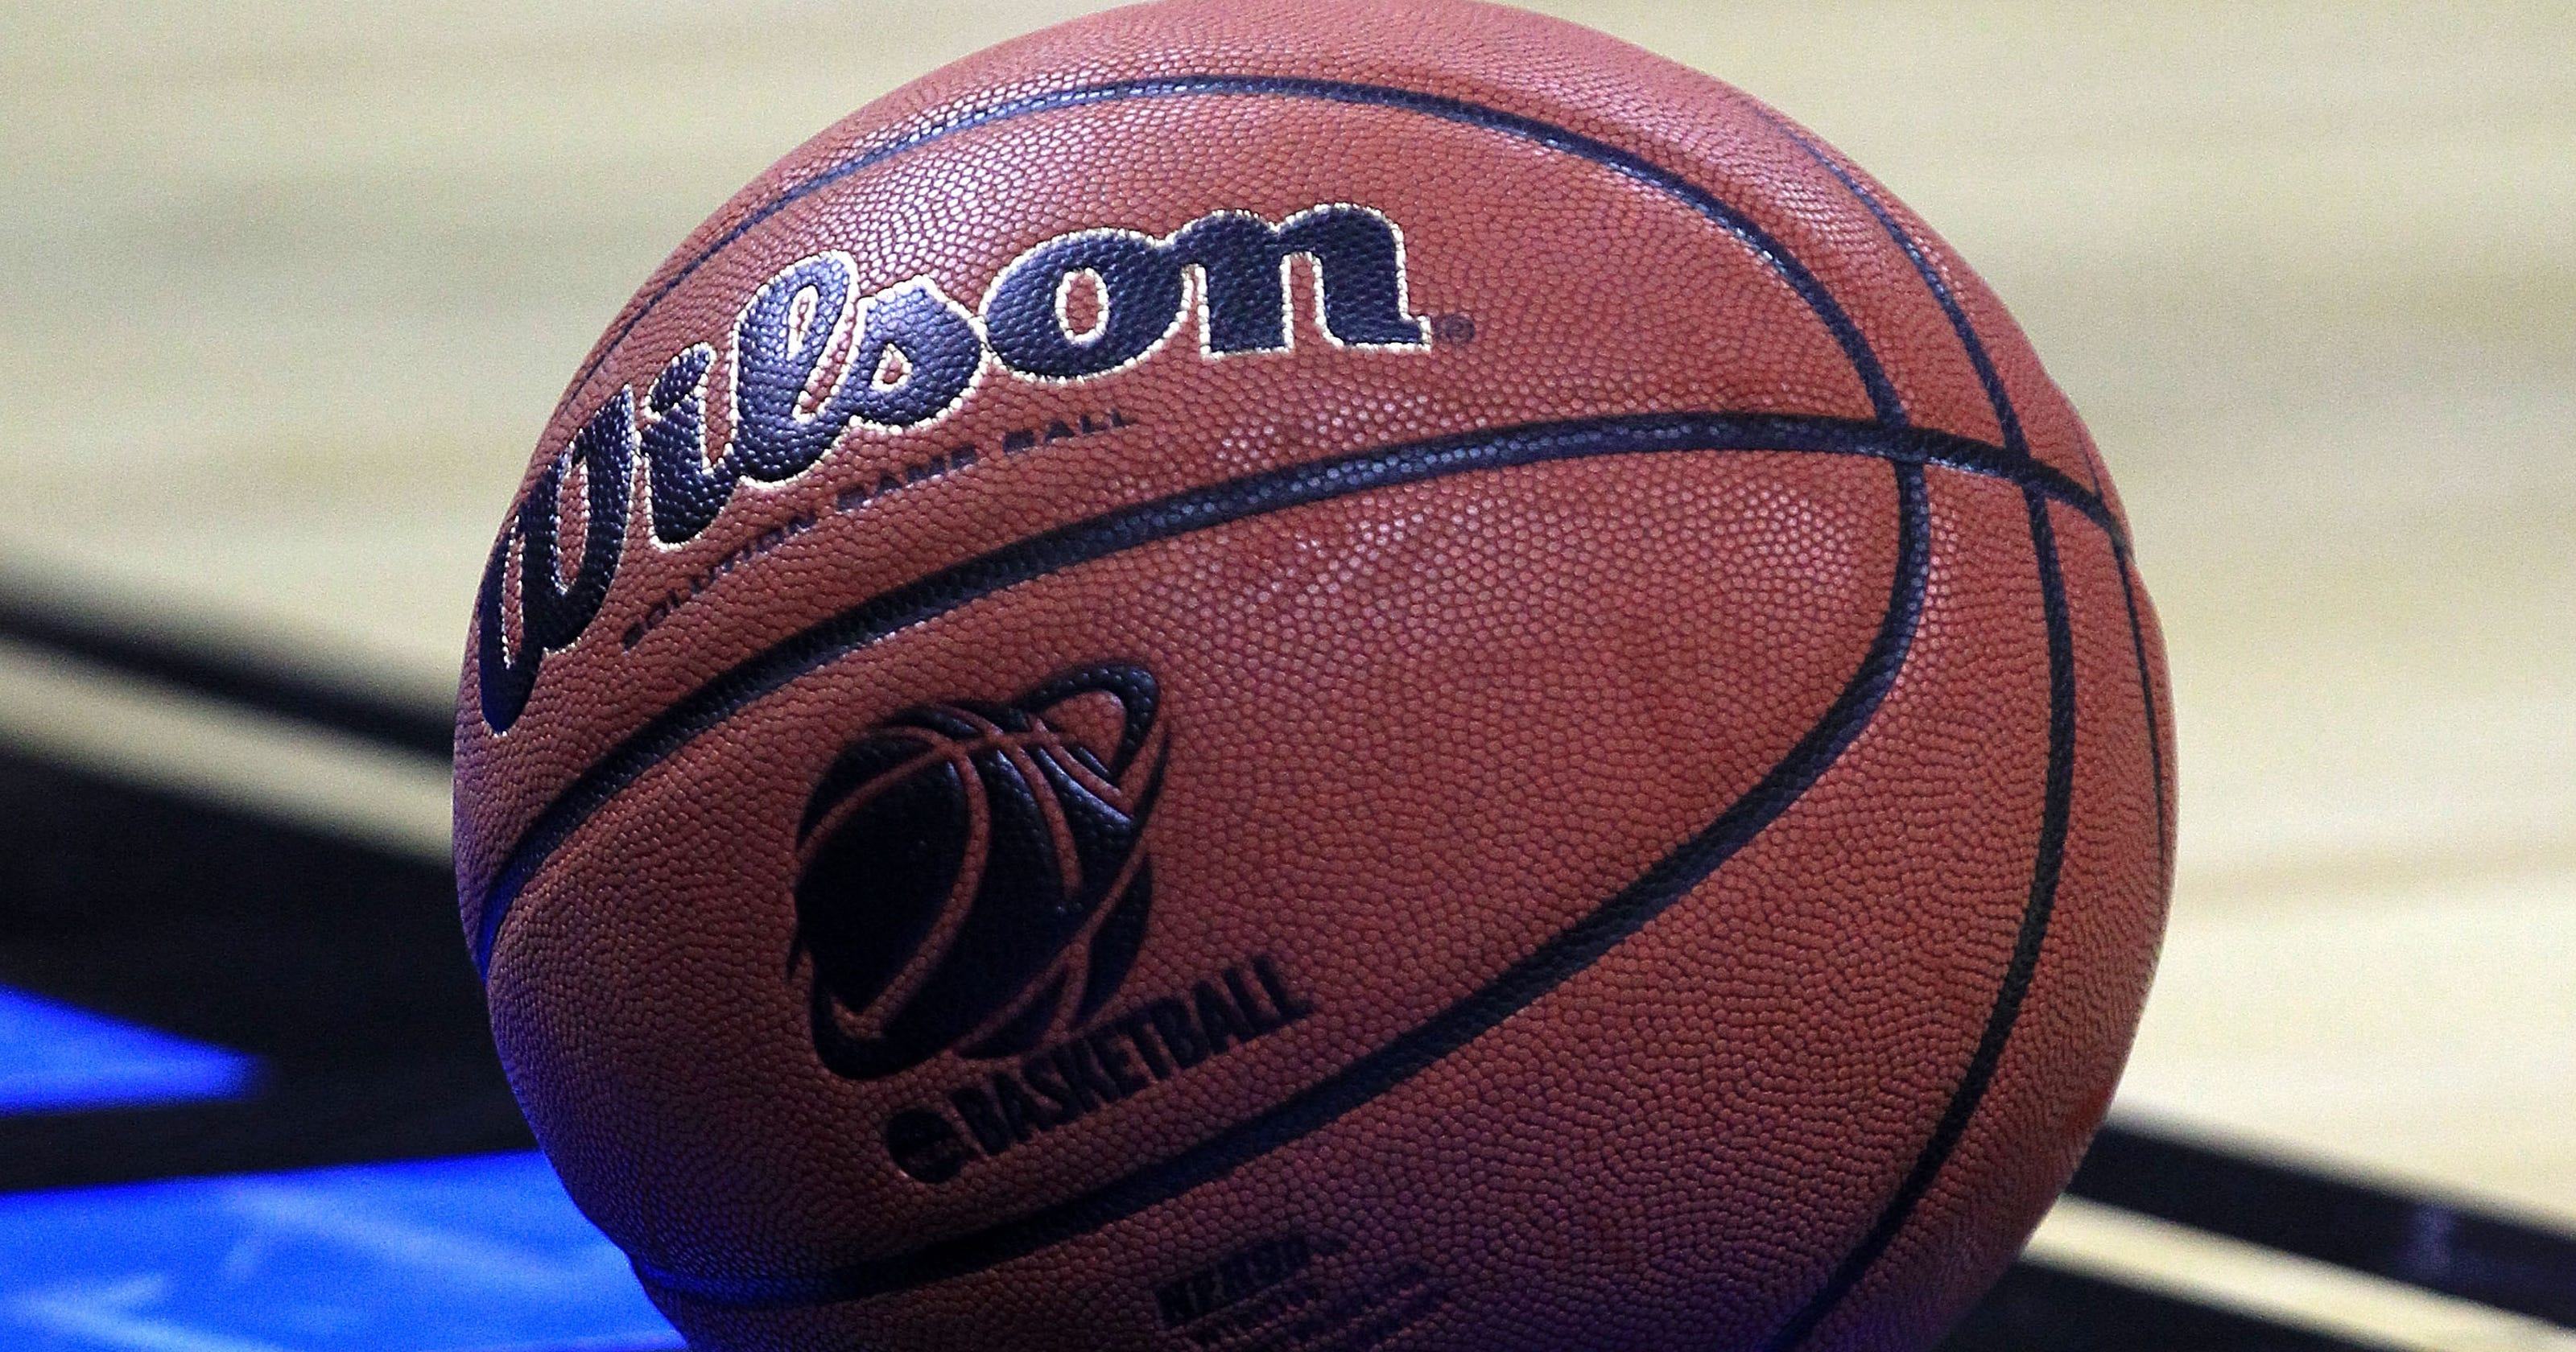 Top players, schools part of federal basketball probe, per report